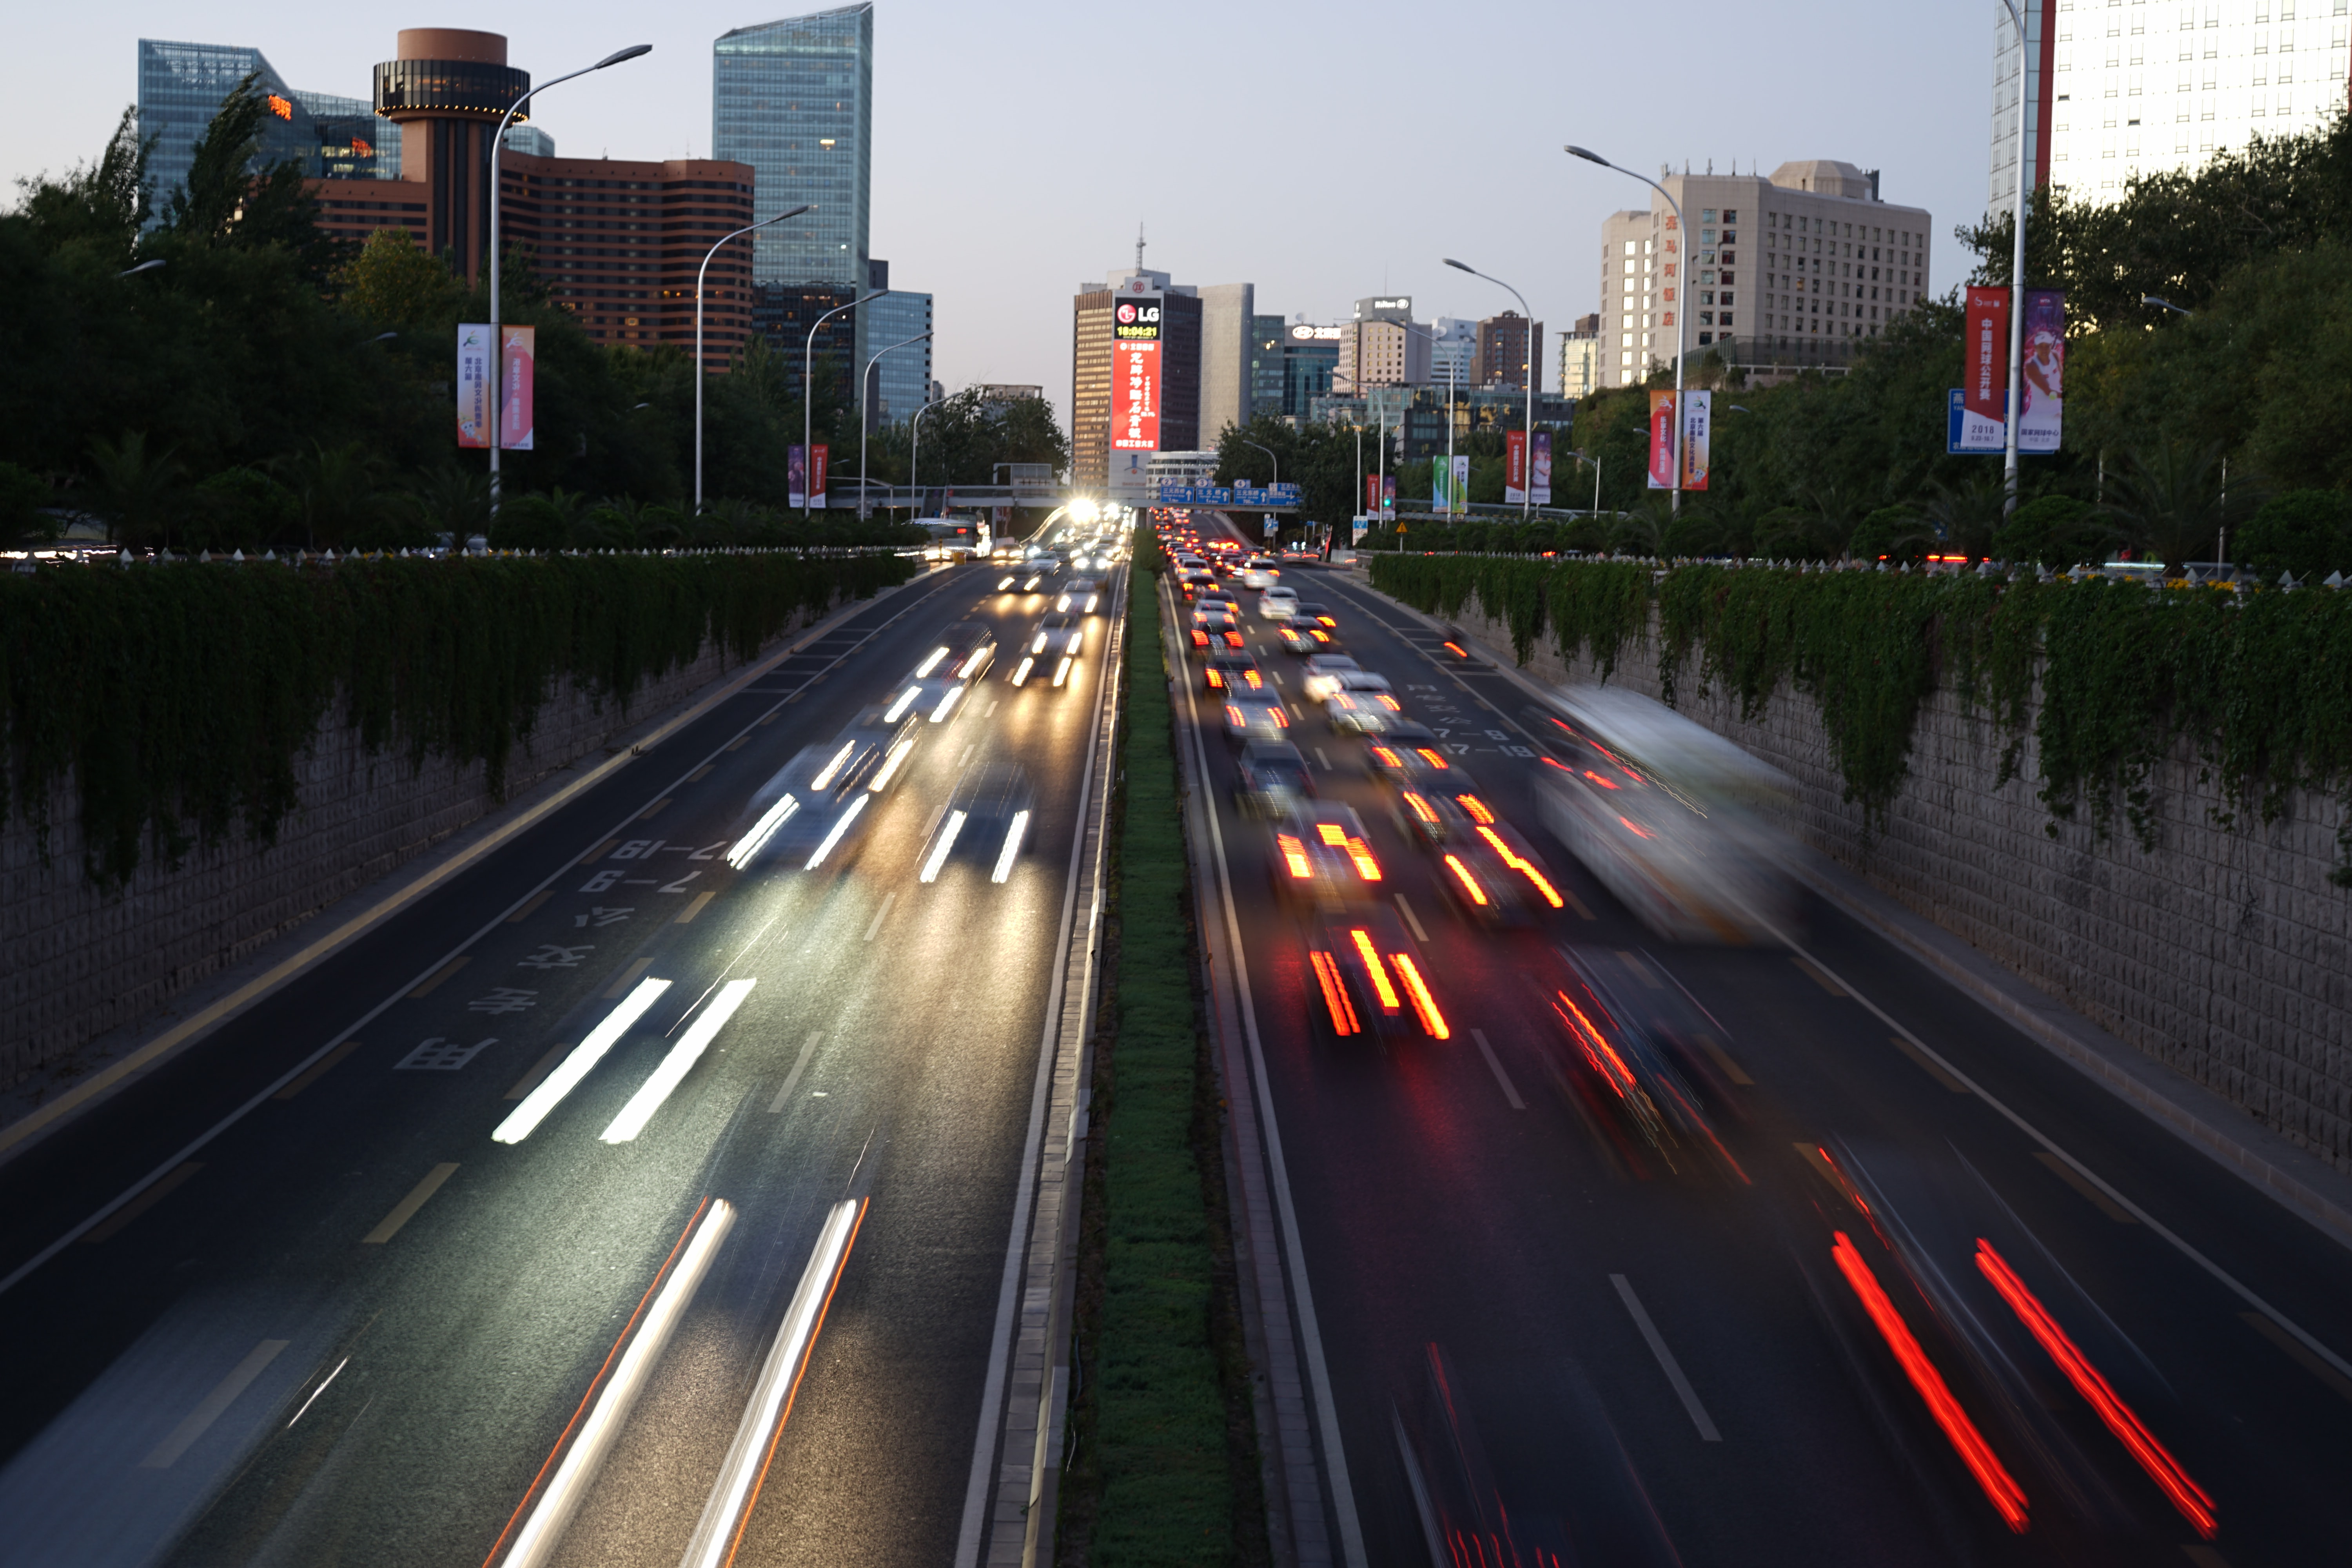 timelapse photography of road during daytime